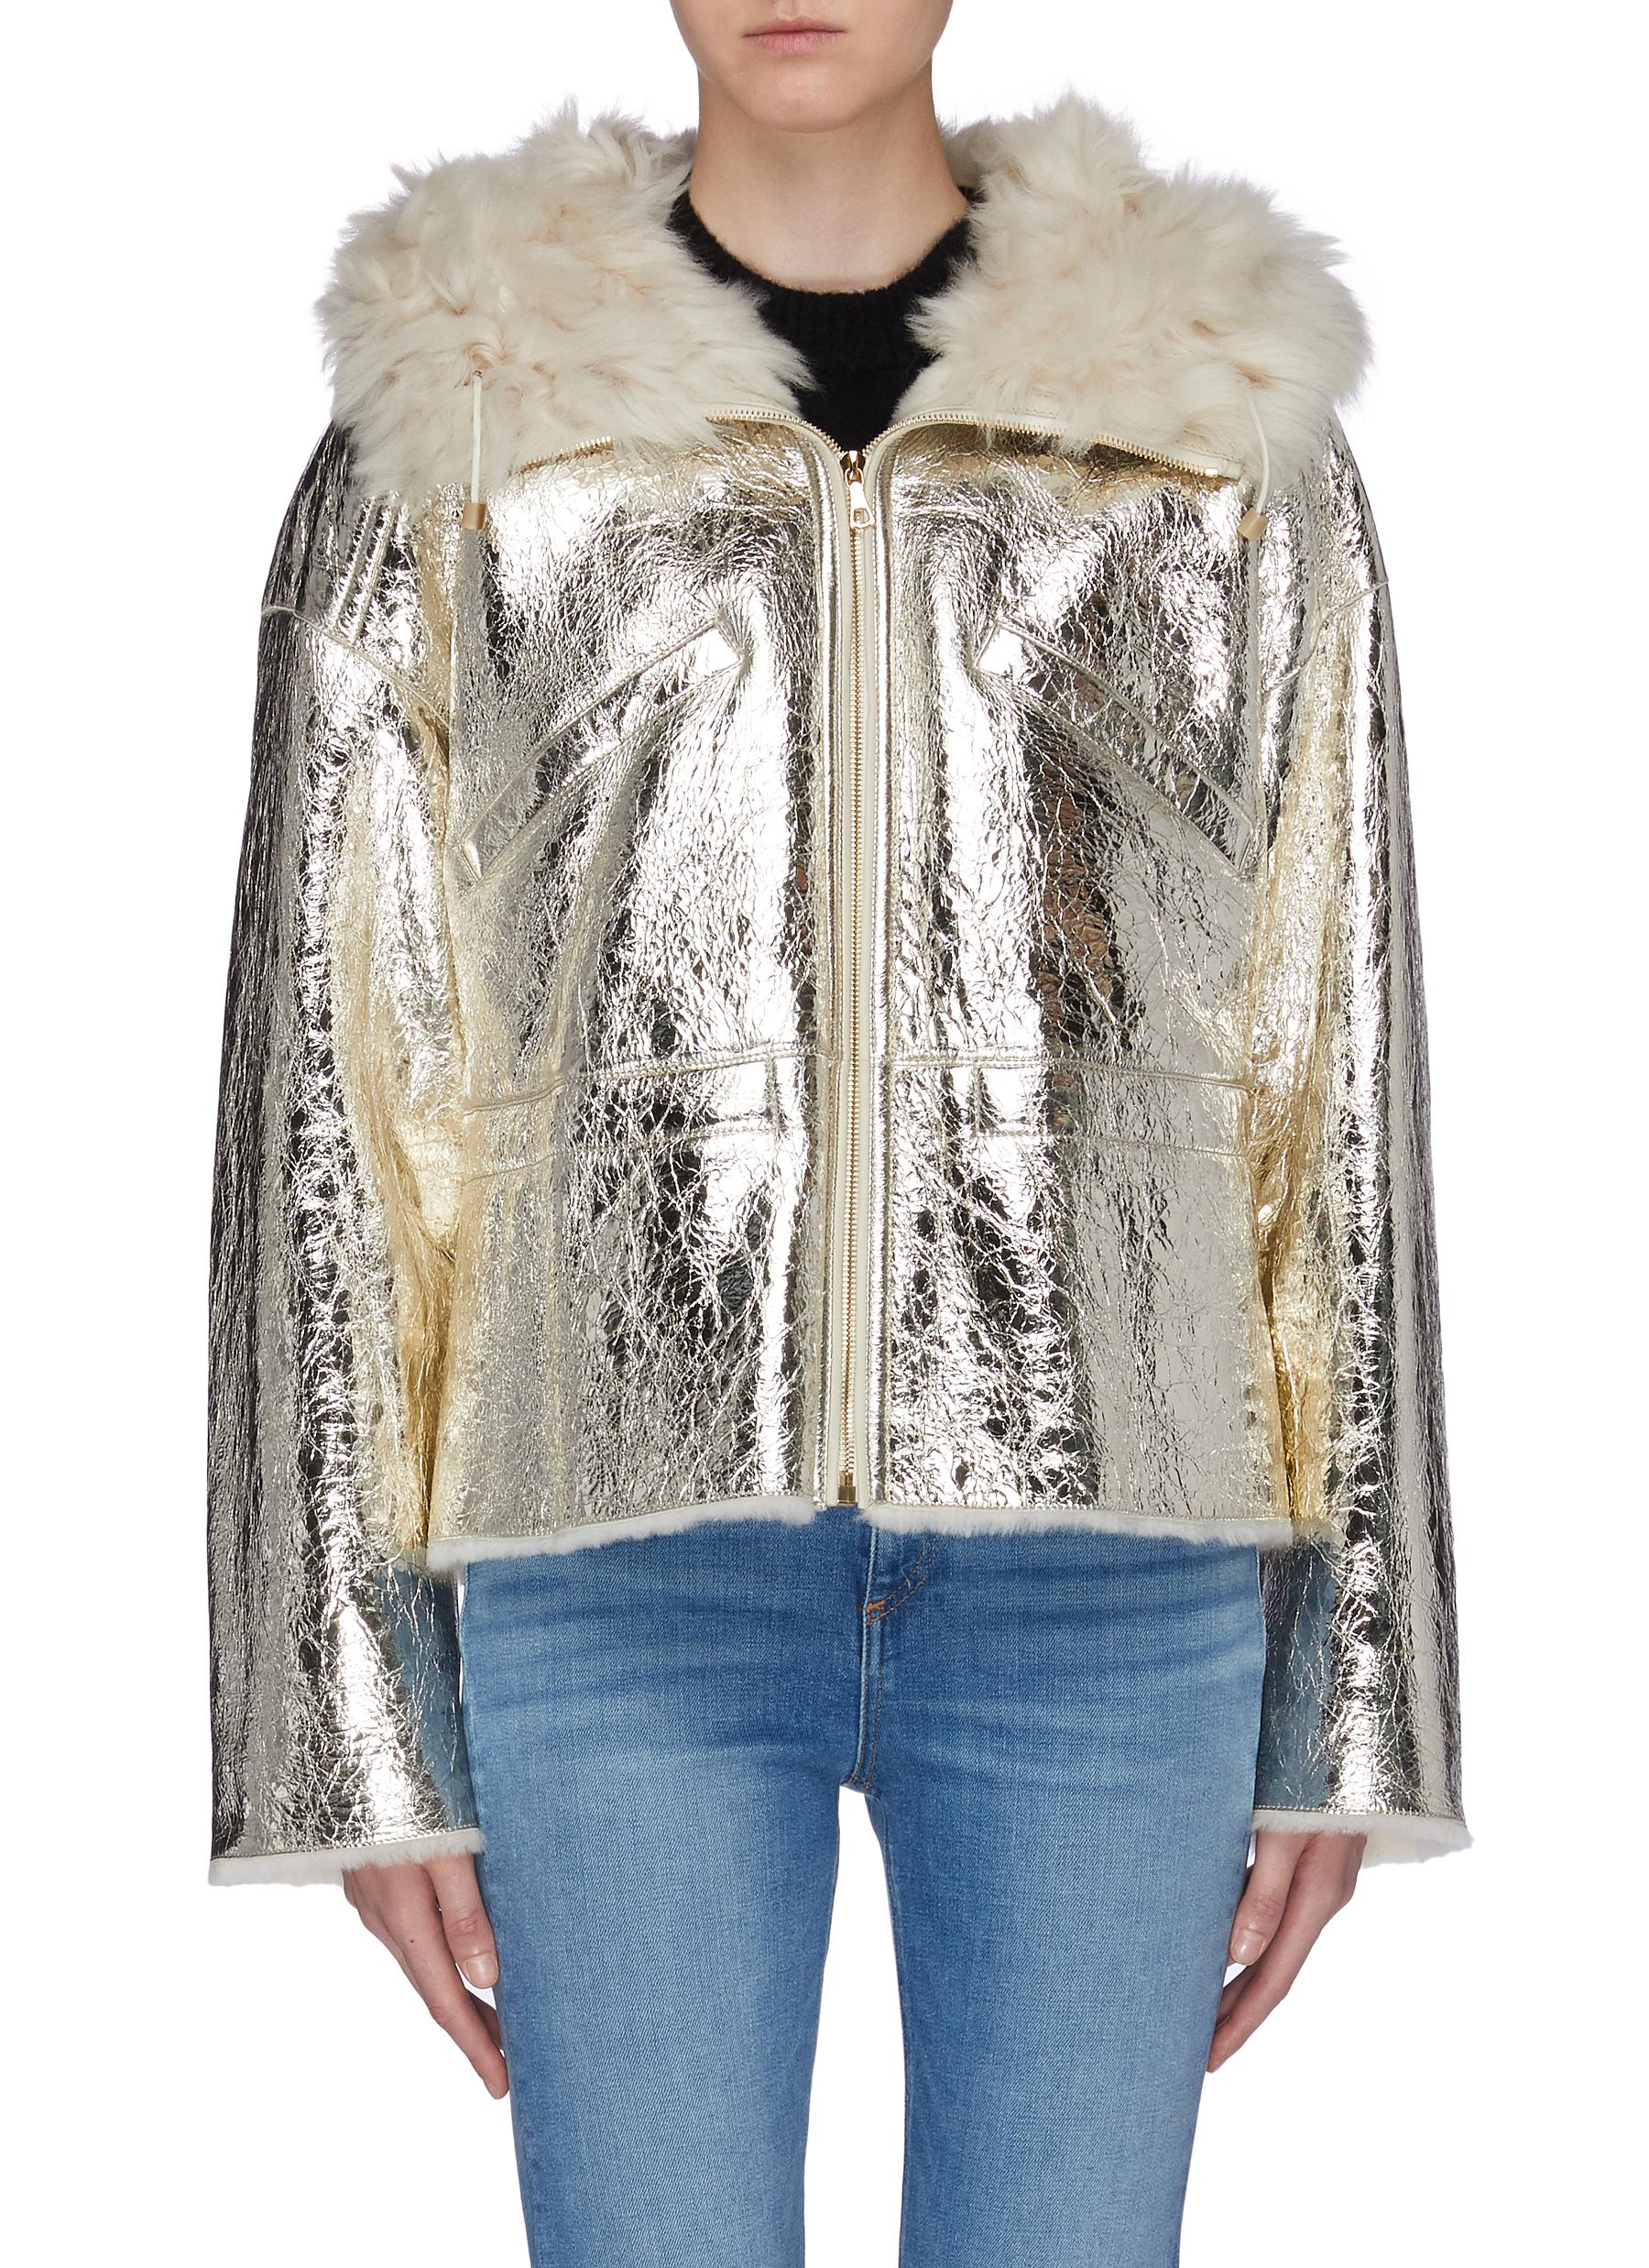 Merino wool collar cracked metallic lambskin shearling coat by Yves Salomon